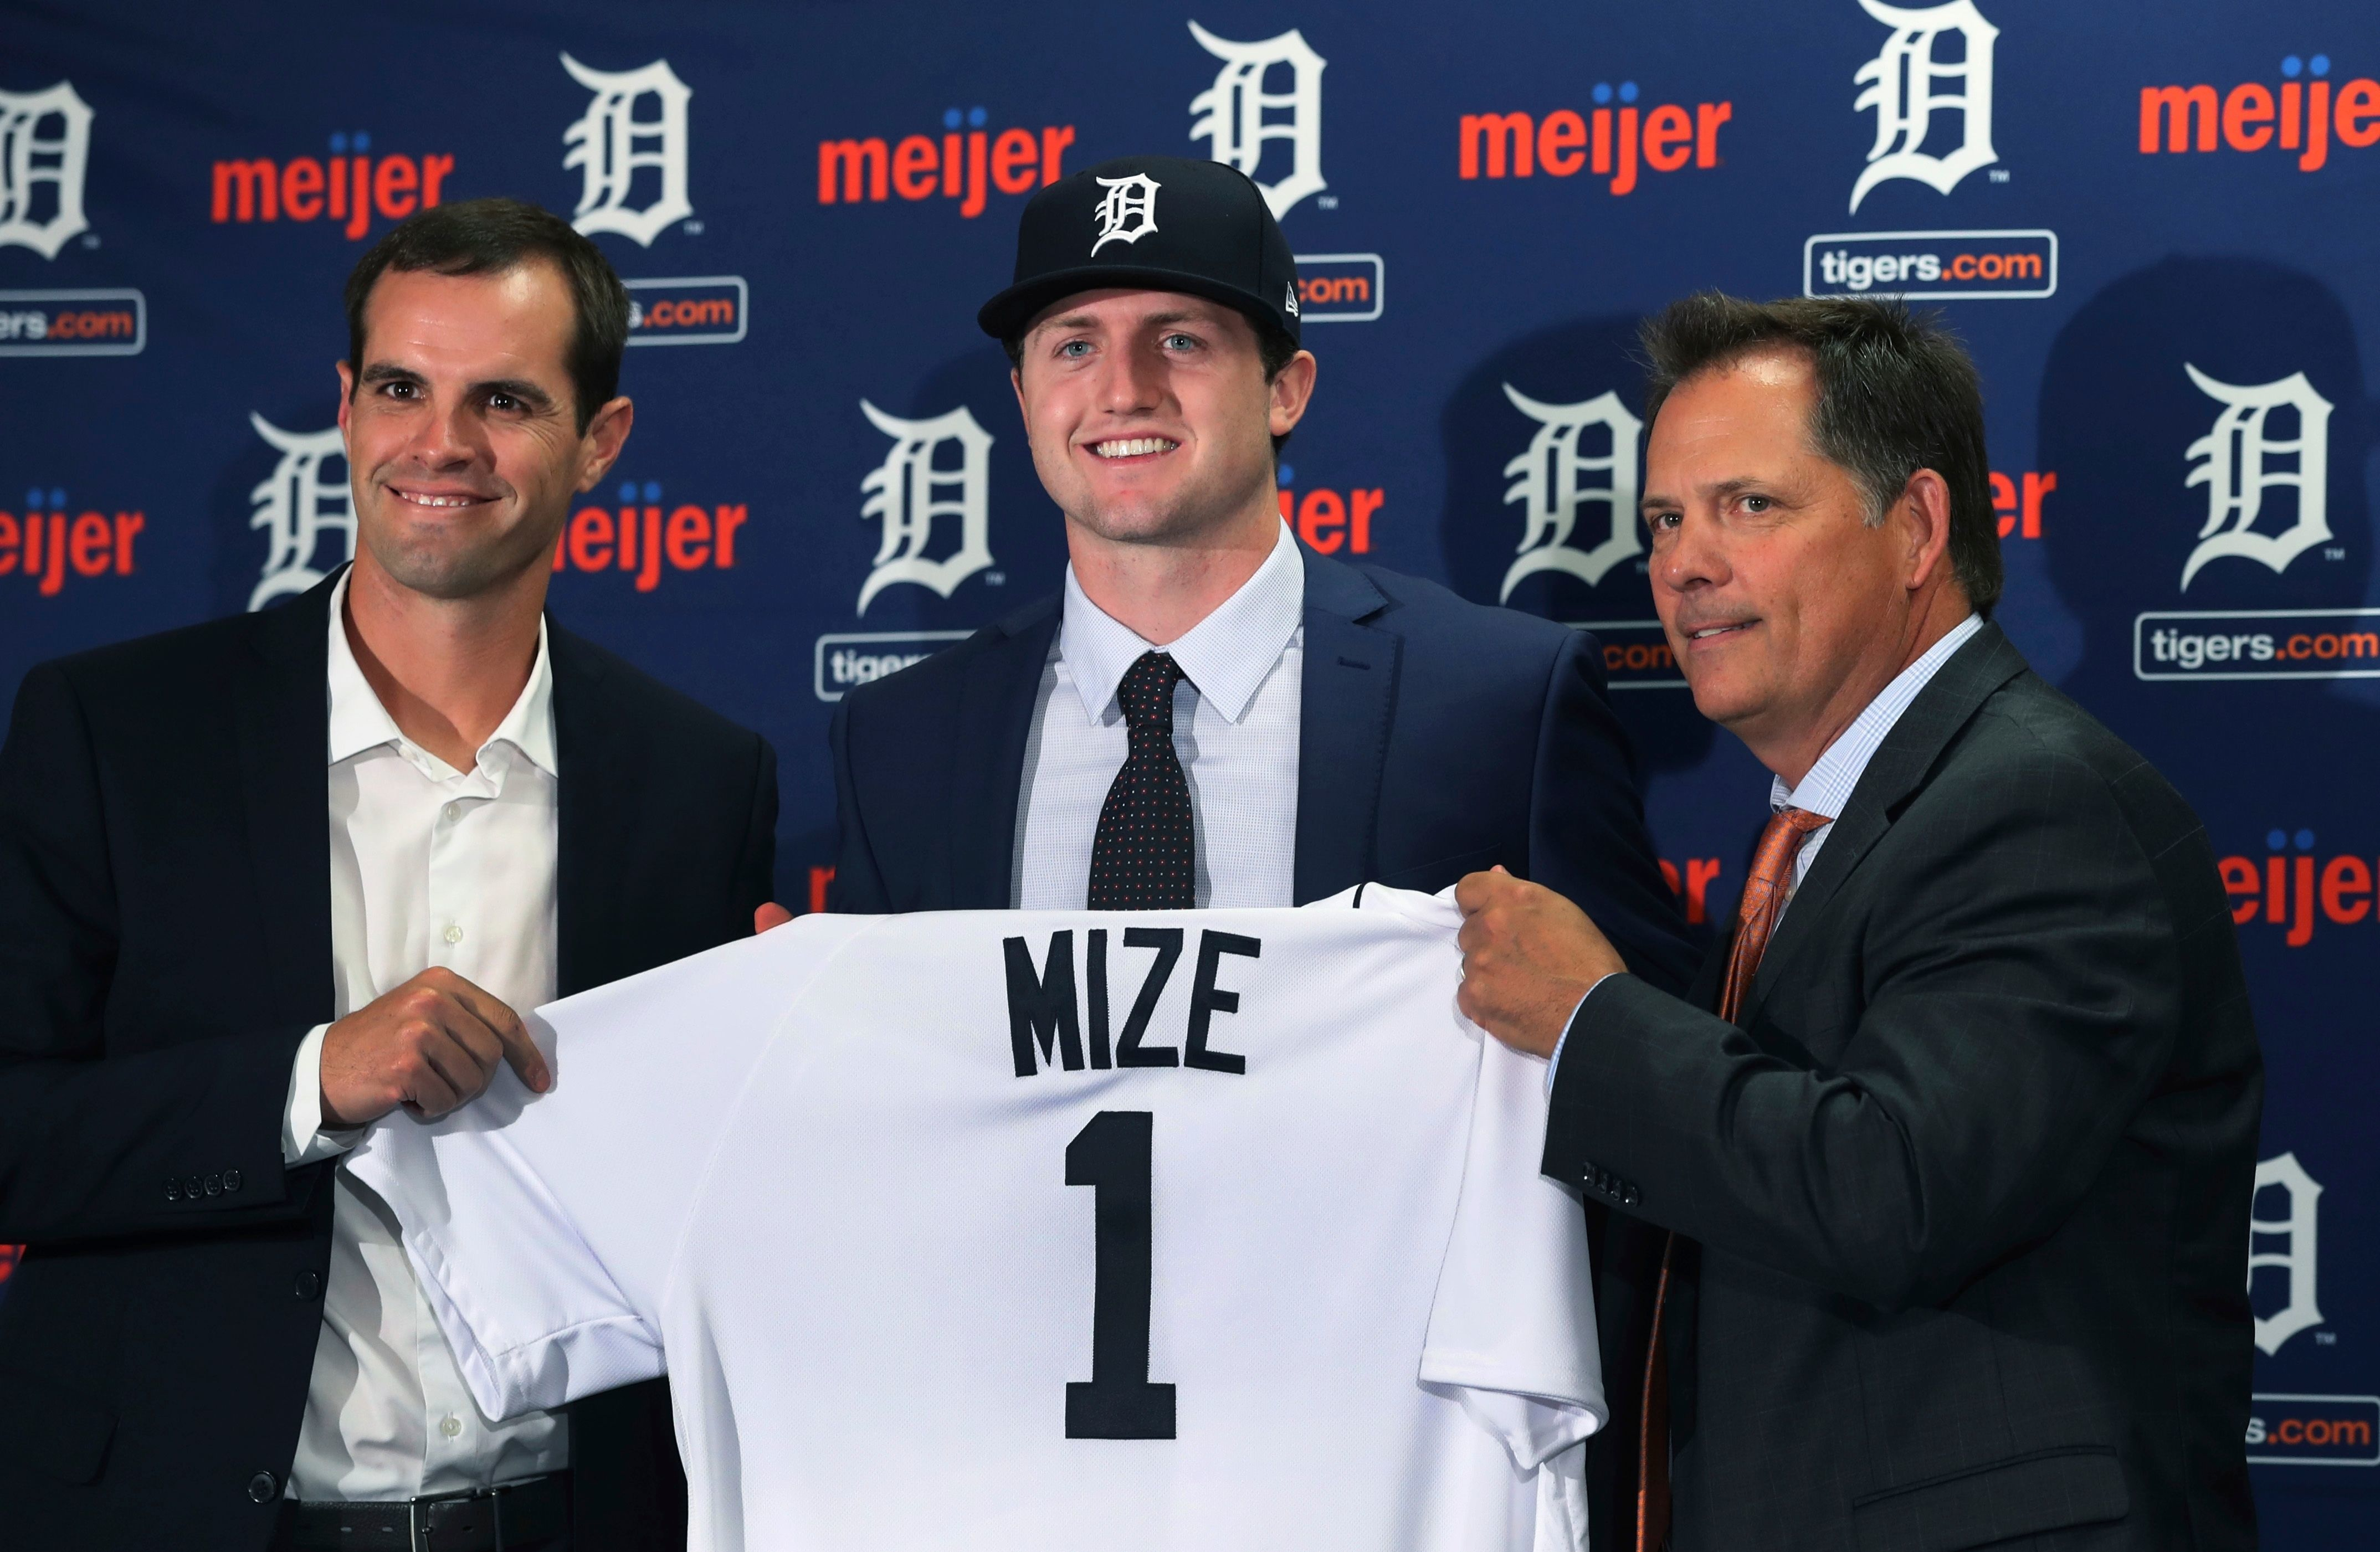 Click through the gallery for a breakdown of the Detroit Tigers' top 10 prospects, compiled by Lynn Henning of The Detroit News. The list is led by right-hander Casey Mize, the No. 1 overall pick in 2018.